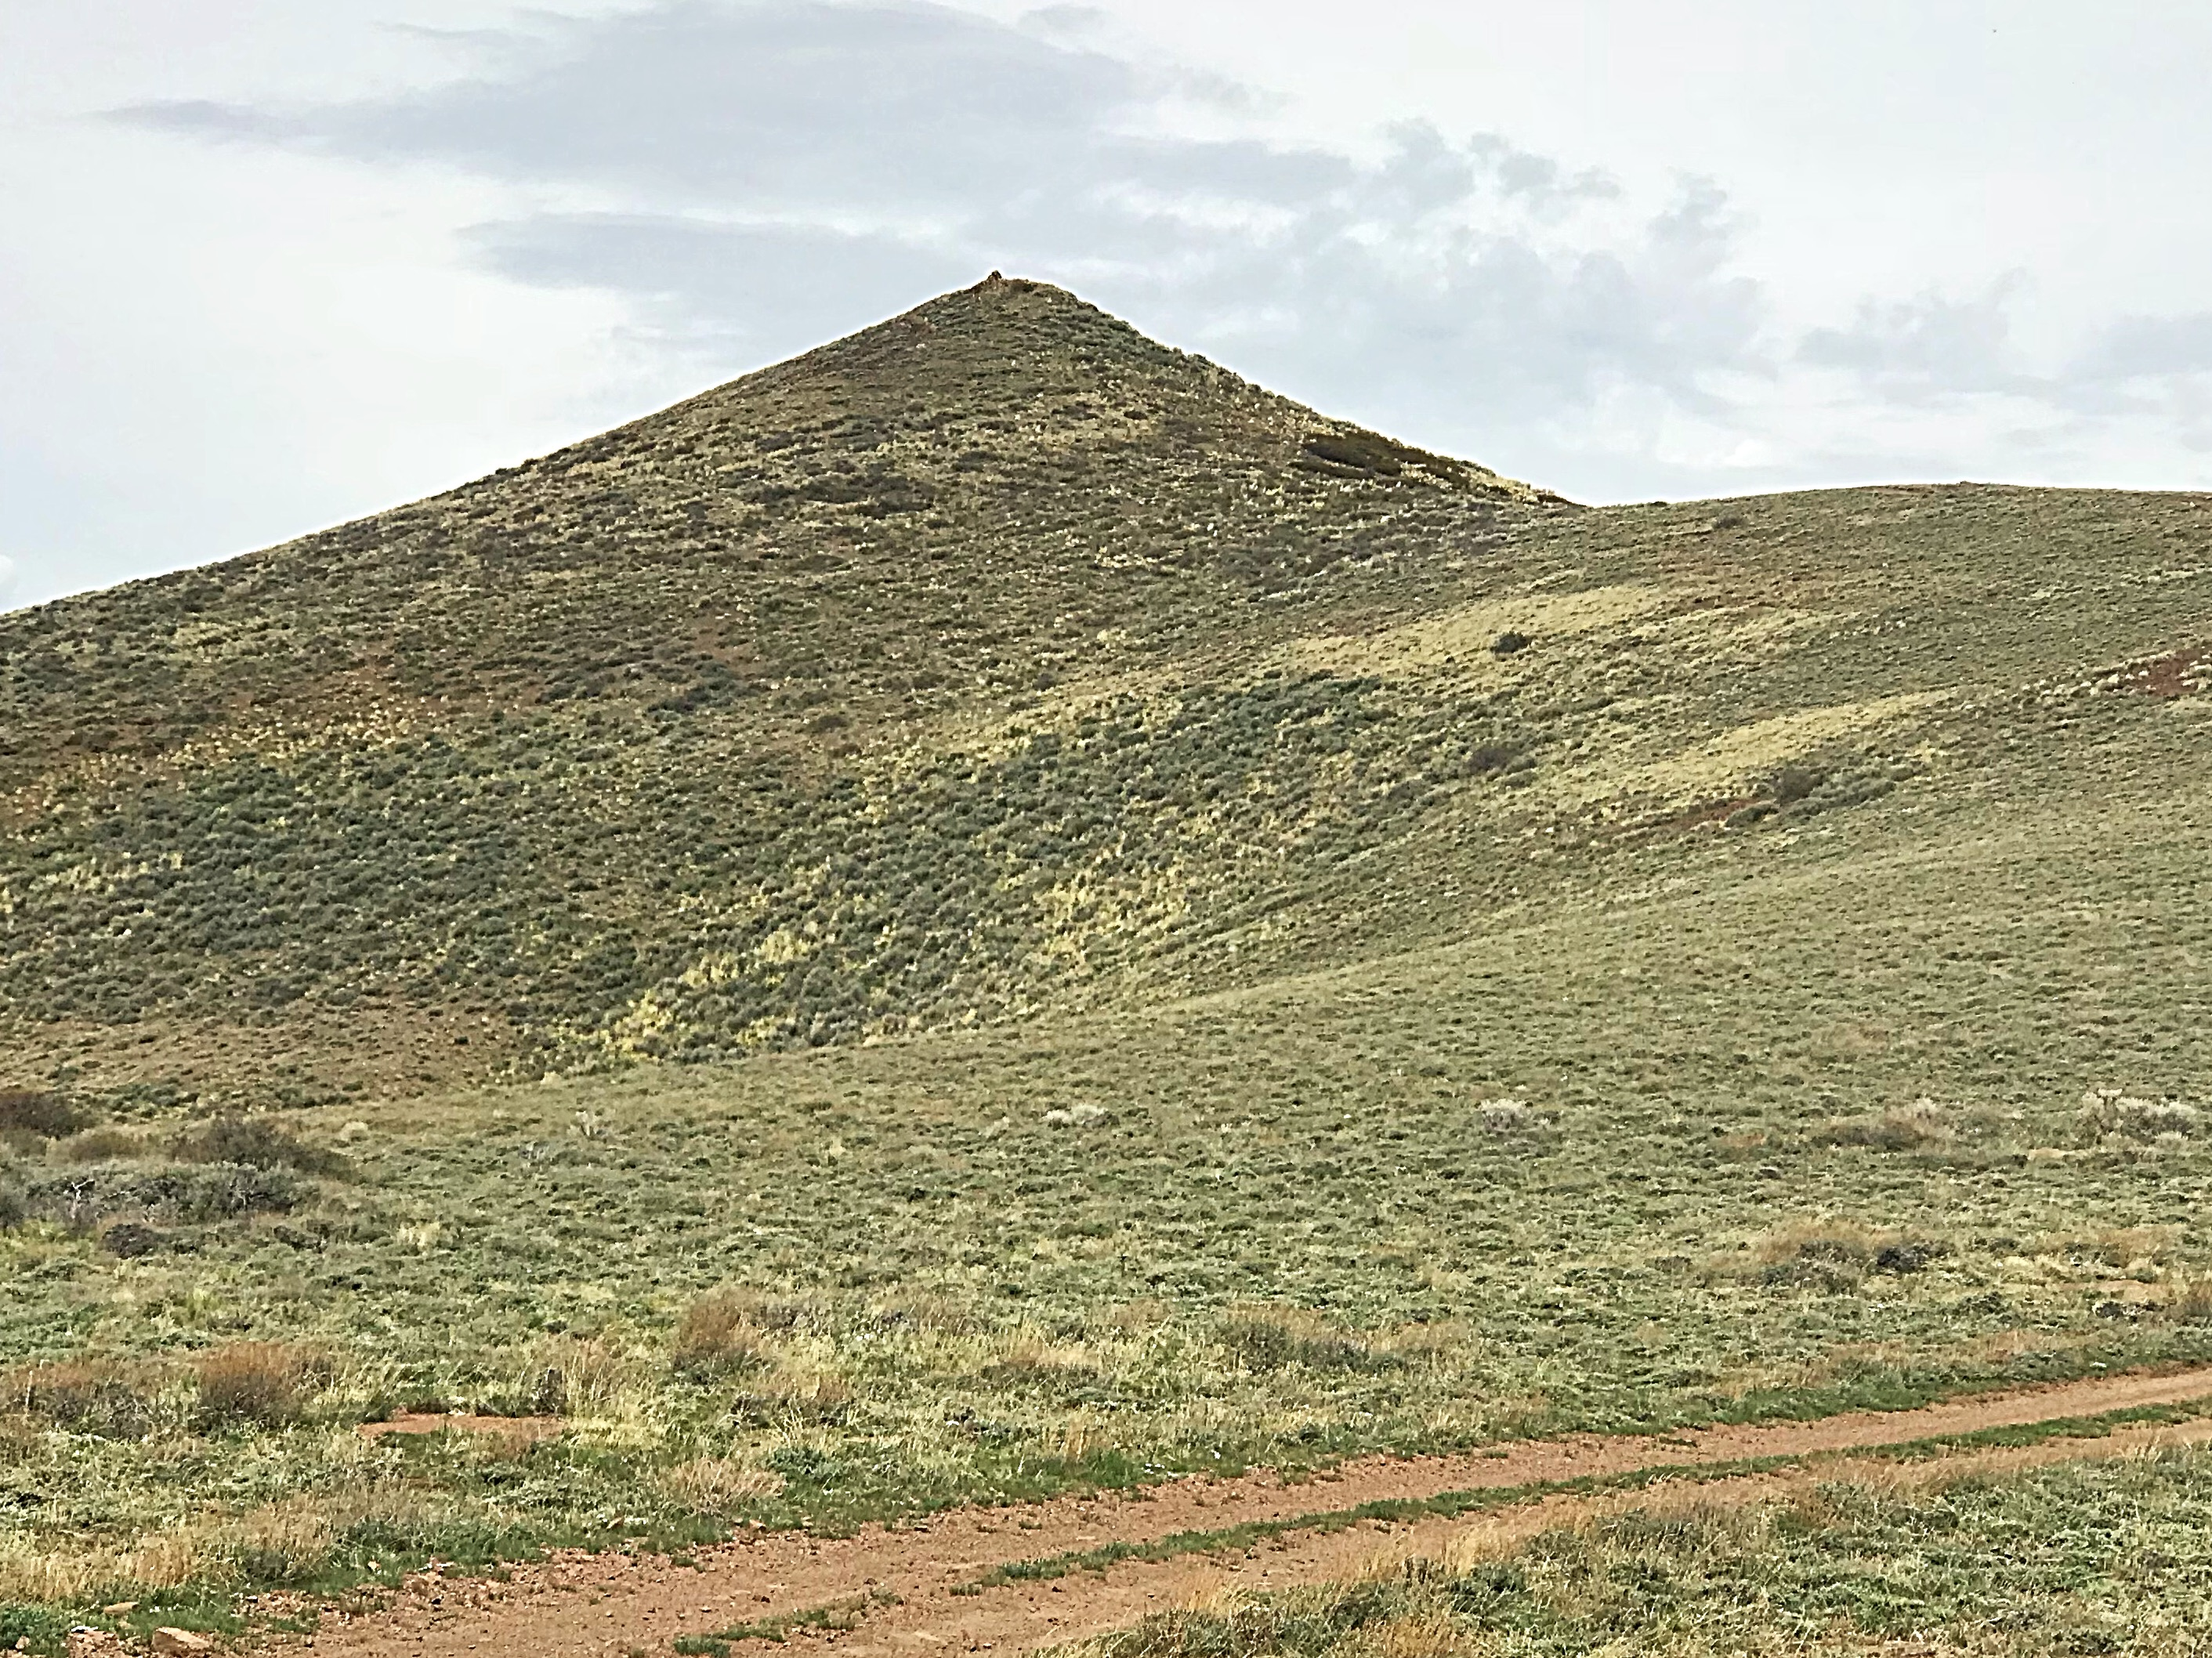 The summit cone of East Twin Peak. The 4WD road ends on the shoulder on the cone's right side.